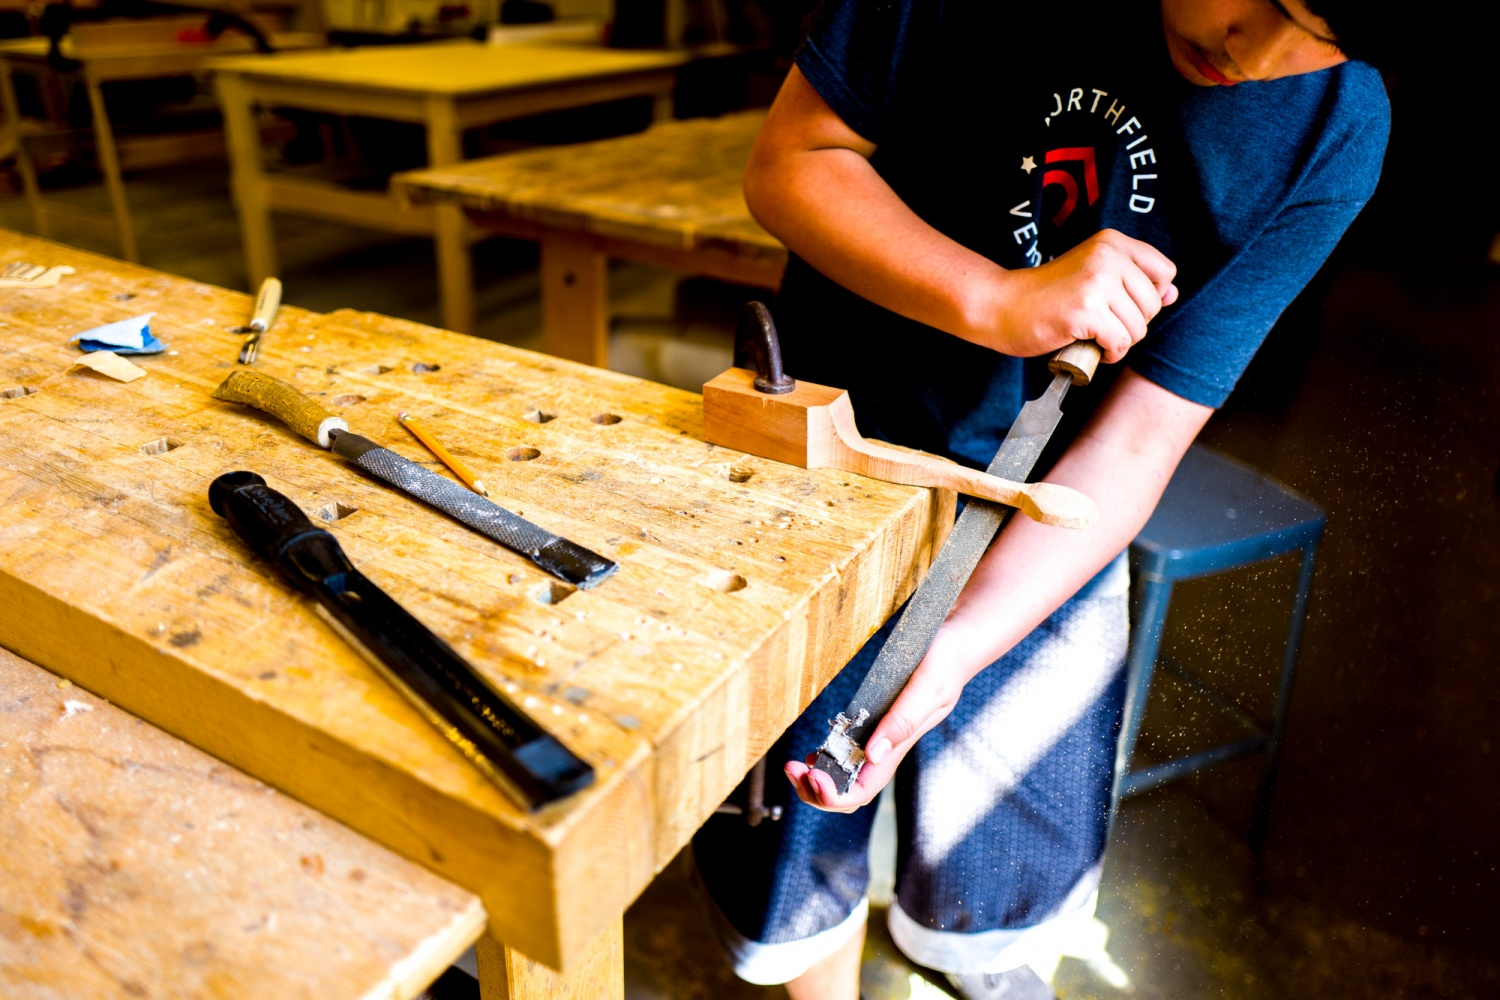 shelburne craft school — tuesday early dismissal woodworking